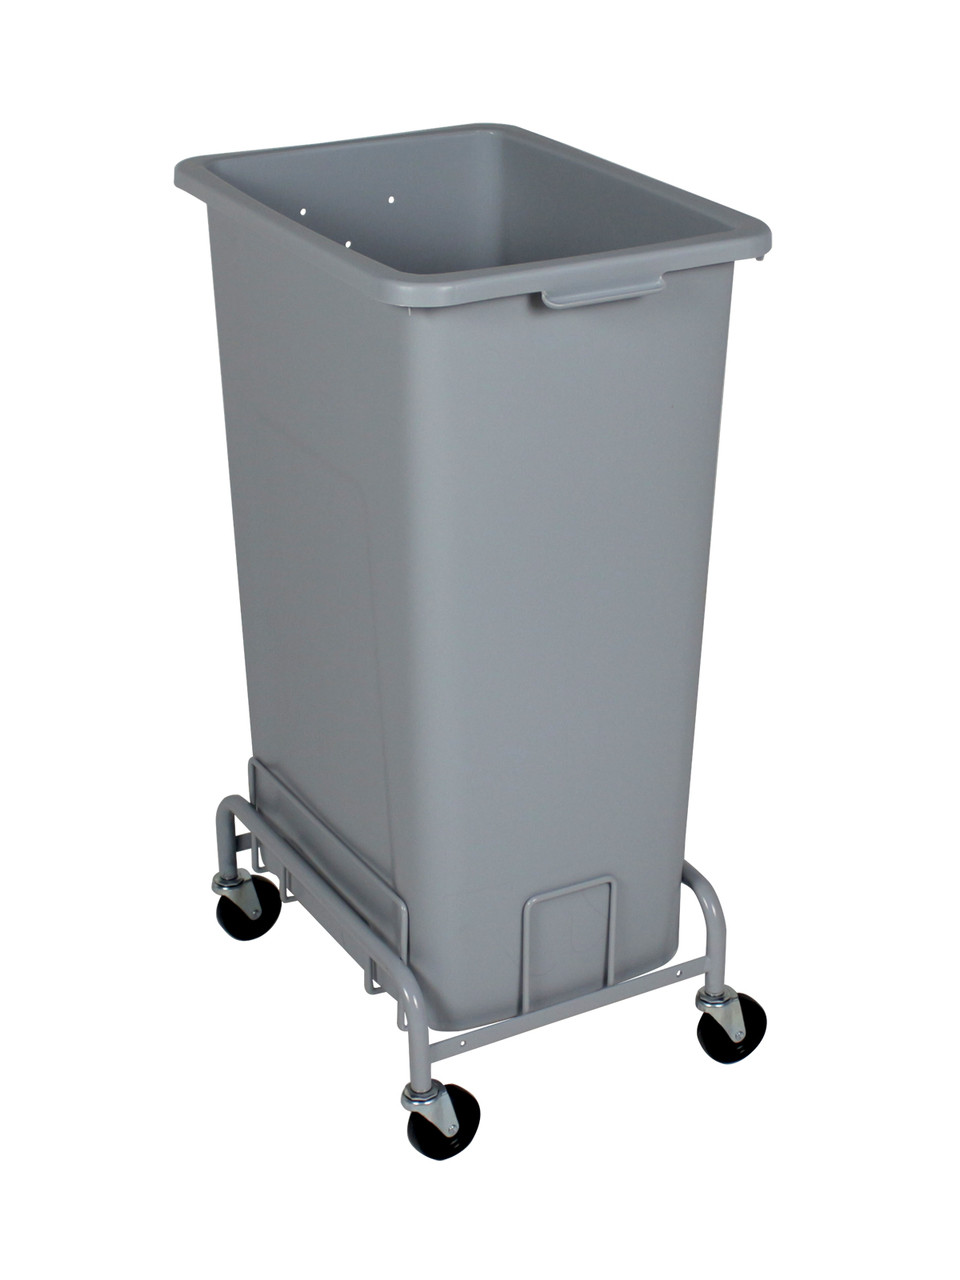 28 Gallon Plastic Extra Large Trash Can with Wheels (4 Color Choices)